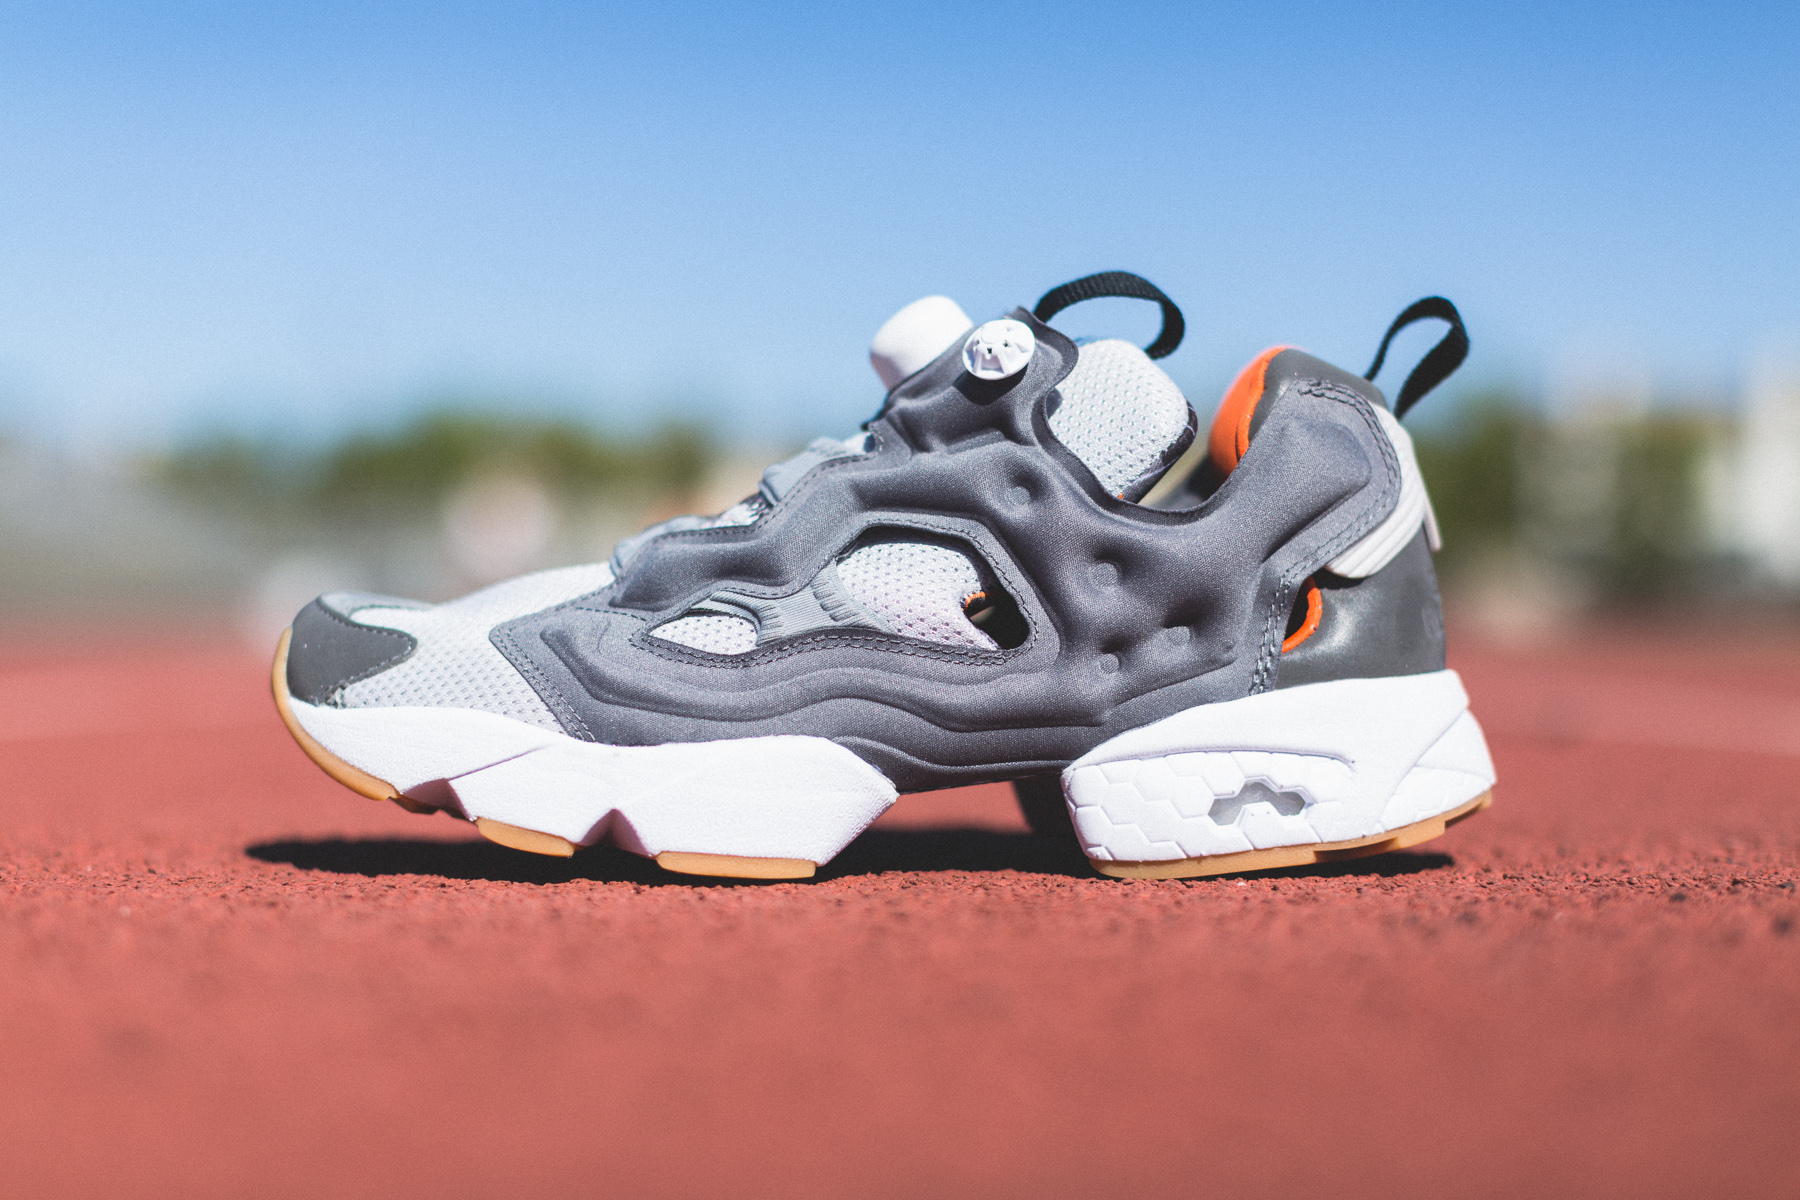 Burn Rubber x Reebok Instapump Fury 20th Anniversary